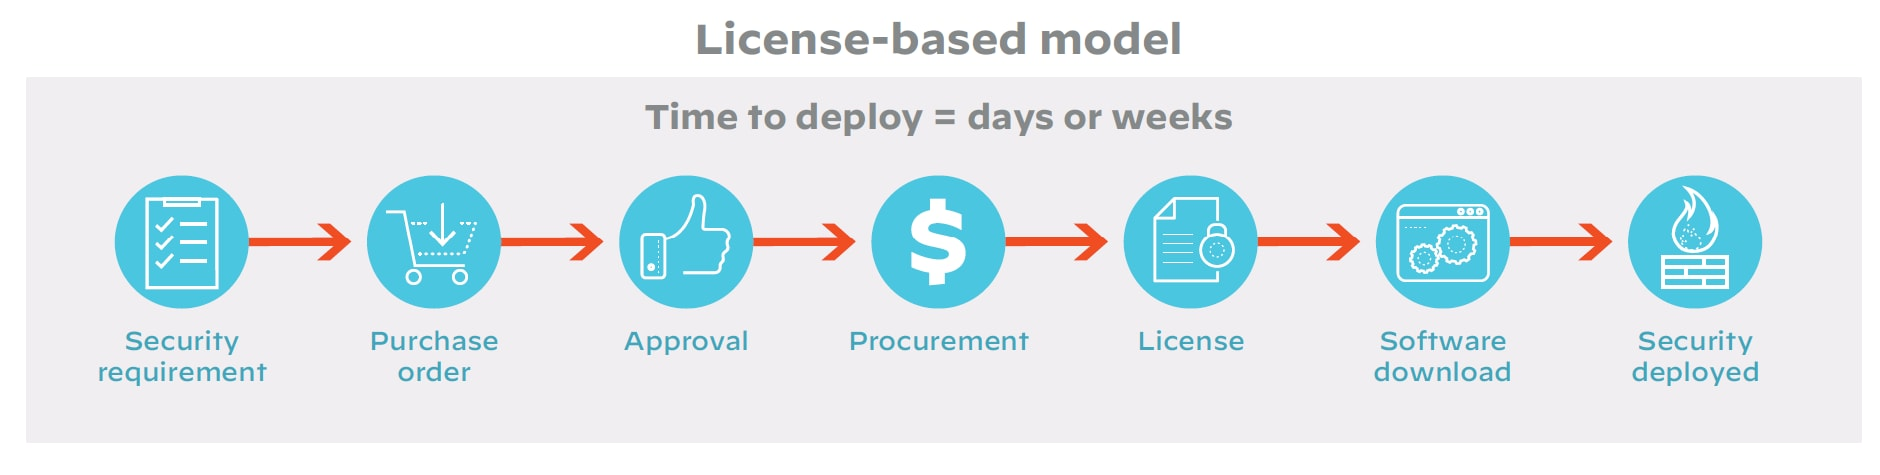 License-based model: Time to deploy = days or weeks; Security requirement leads to purchase order leads to approval leads to procurement leads to license leads to software download leads to security deployed.